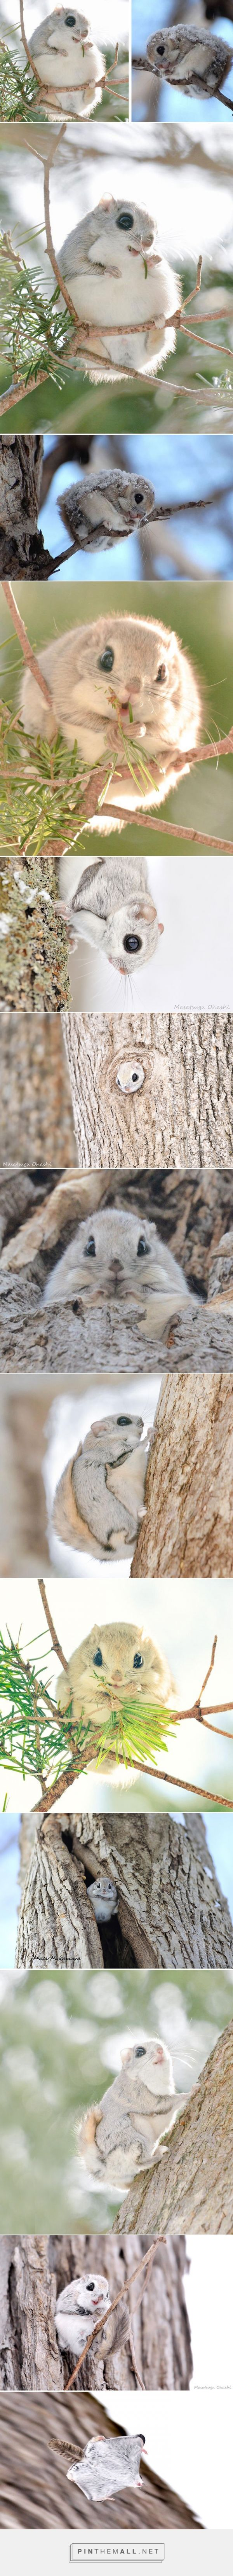 Japanese And Siberian Flying Squirrels Are Probably The Cutest Animals On Earth | Bored Panda - I can't believe The Internet hasn't made these cuties uber famous already. I get cuteness is in the eye of the beholder, but c'mon....these guys are the very definition of adorable!